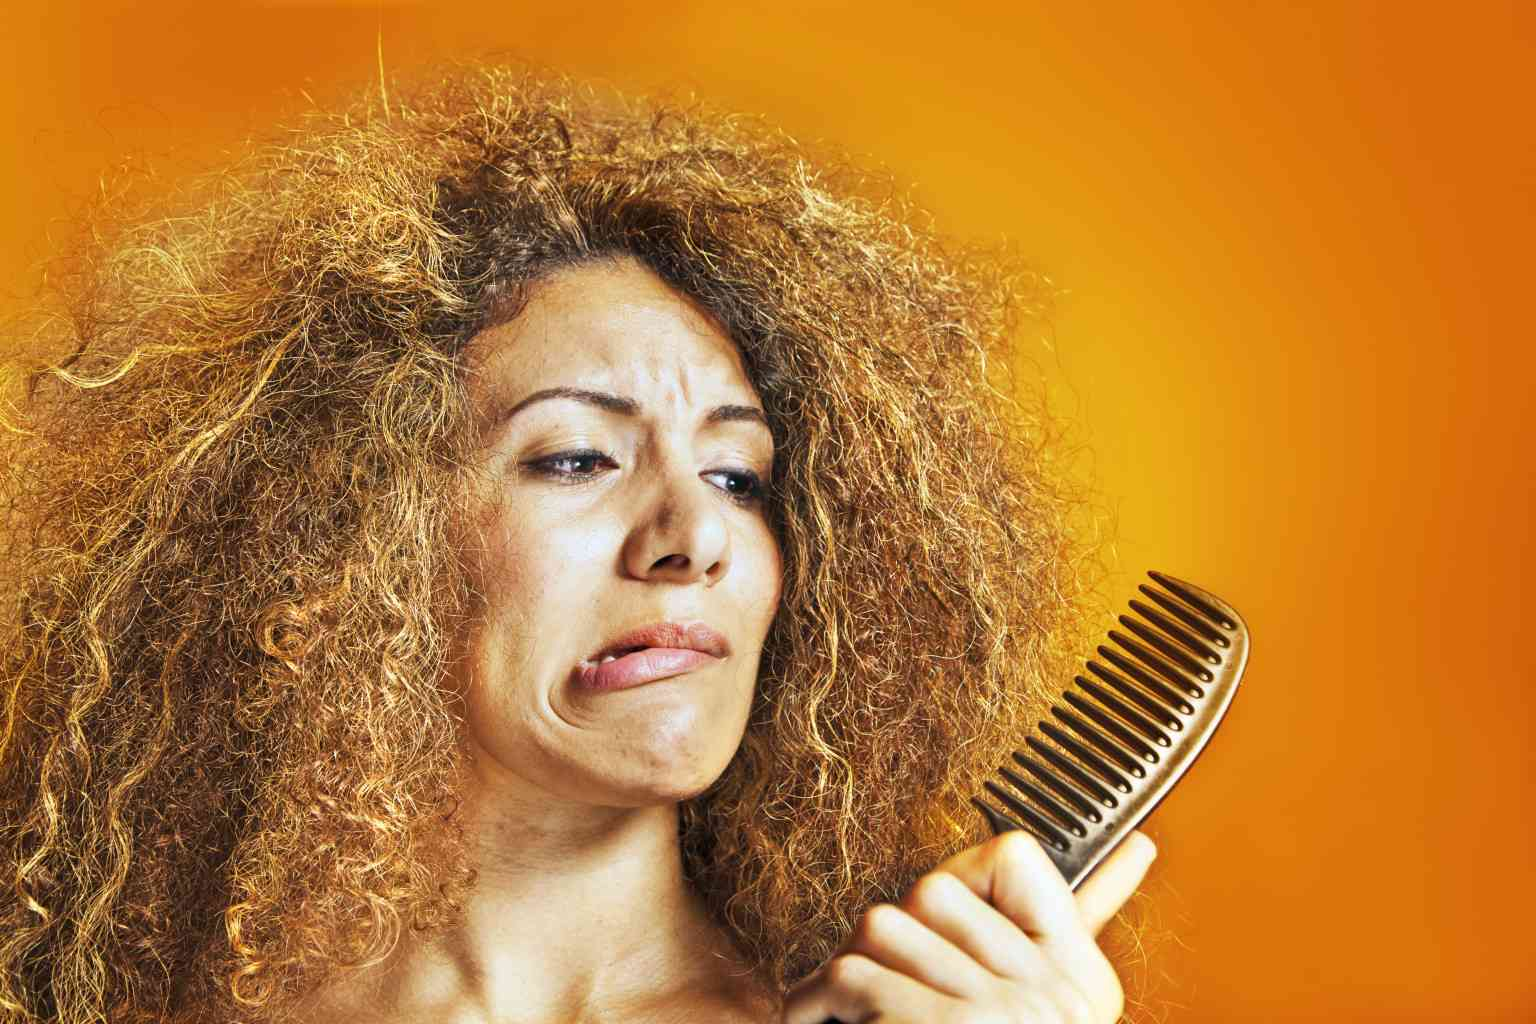 Winning Tips For Bad Hair Days